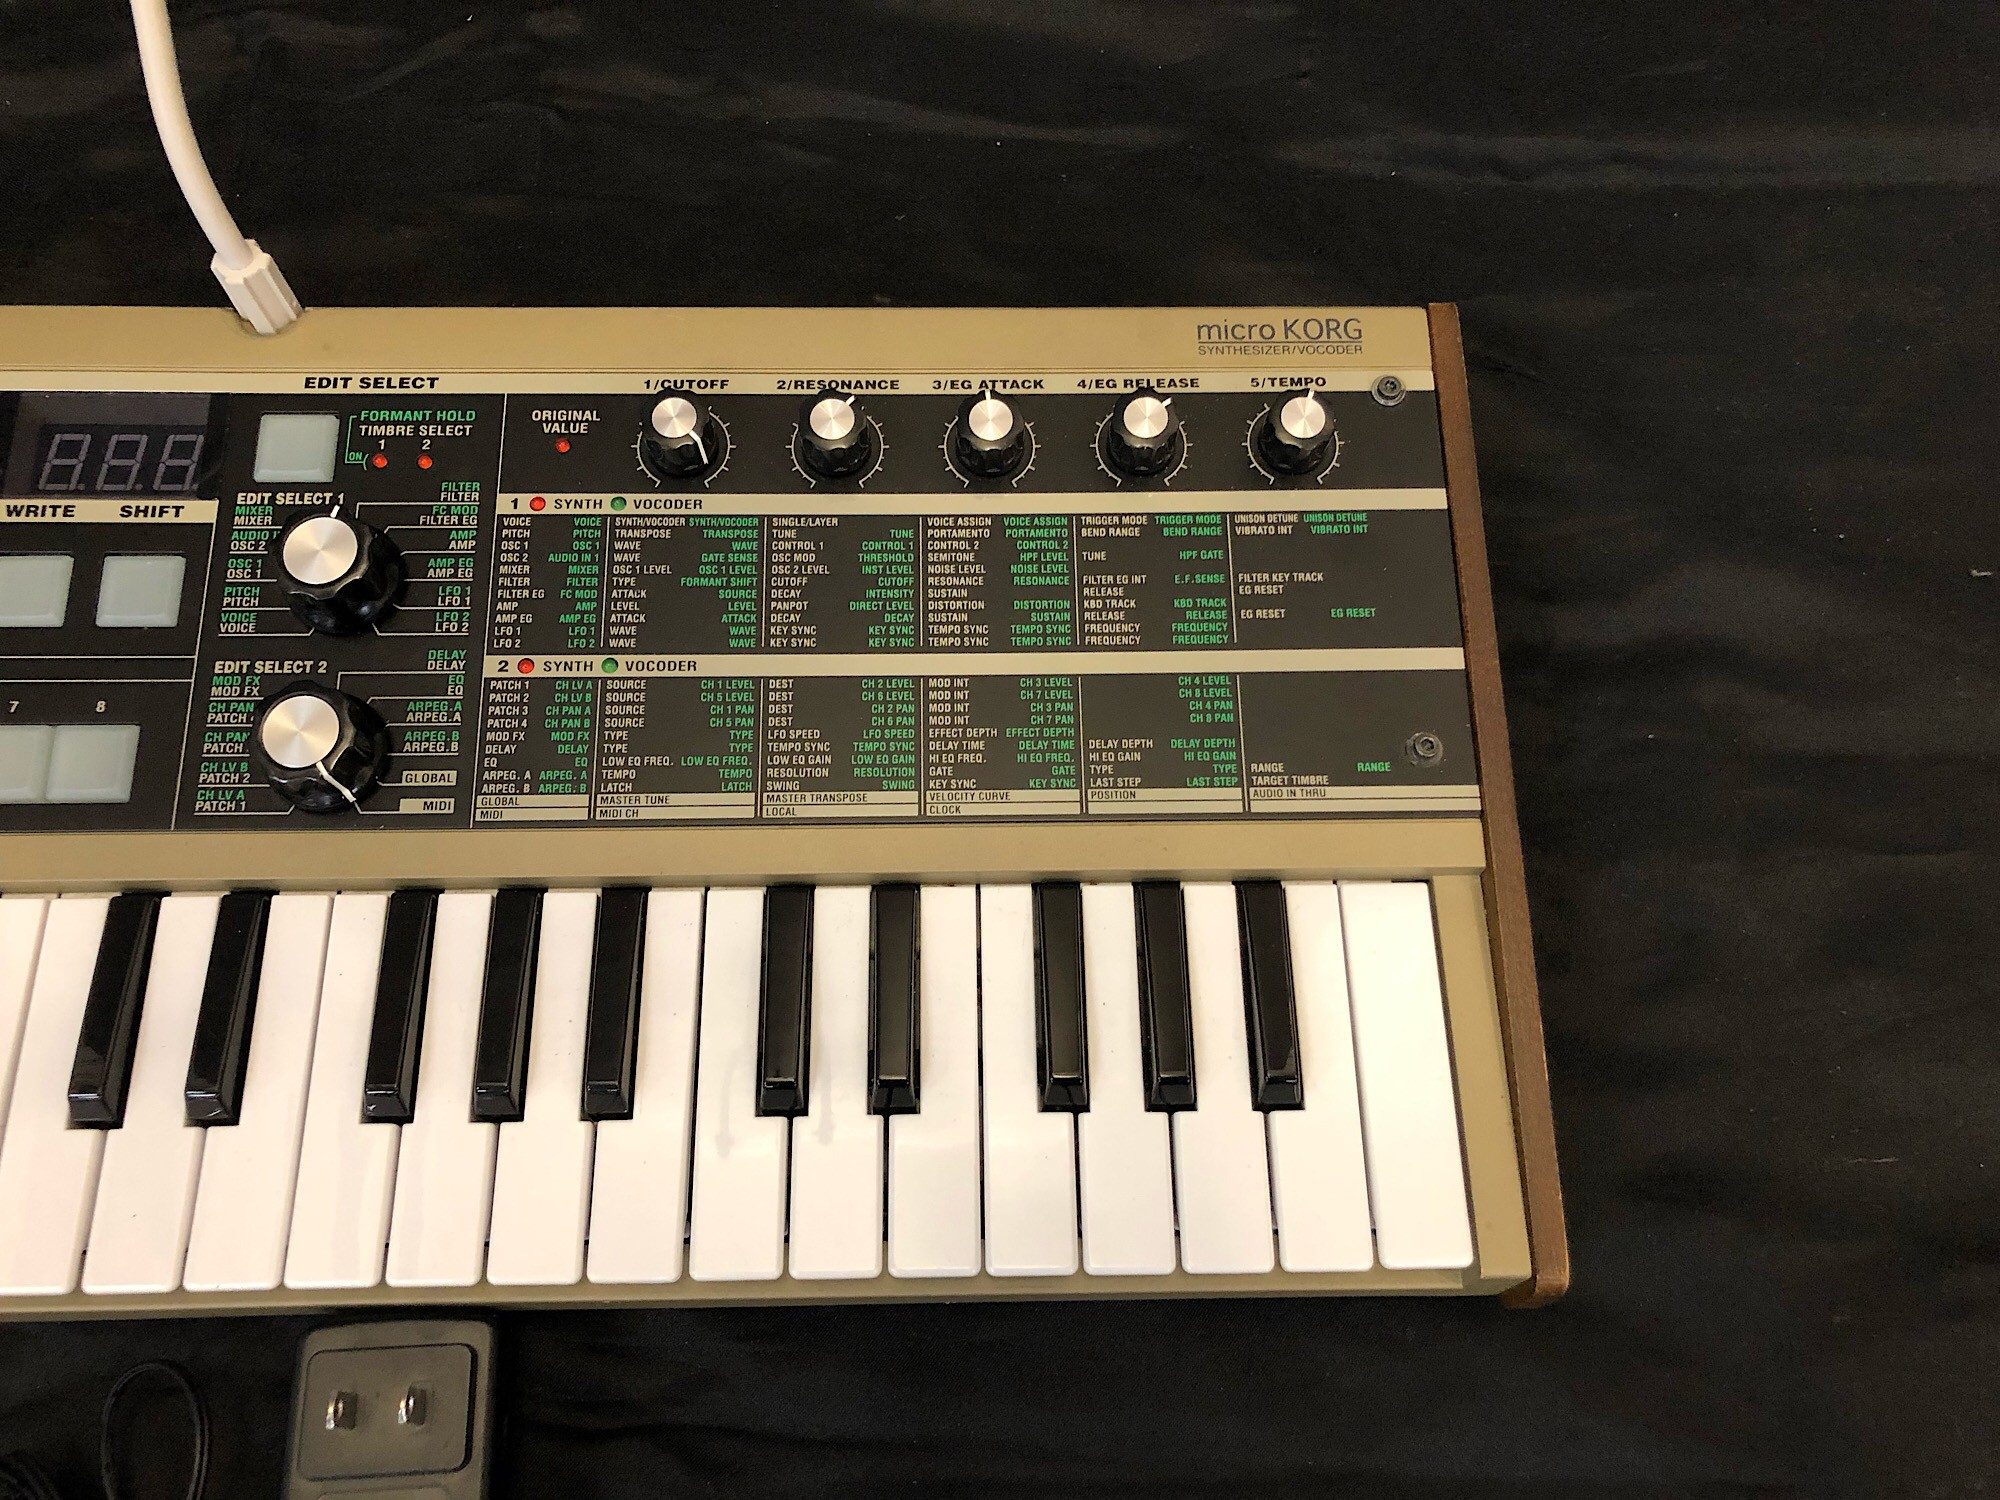 Used Korg MICROKORG - Sam Ash Used Gear